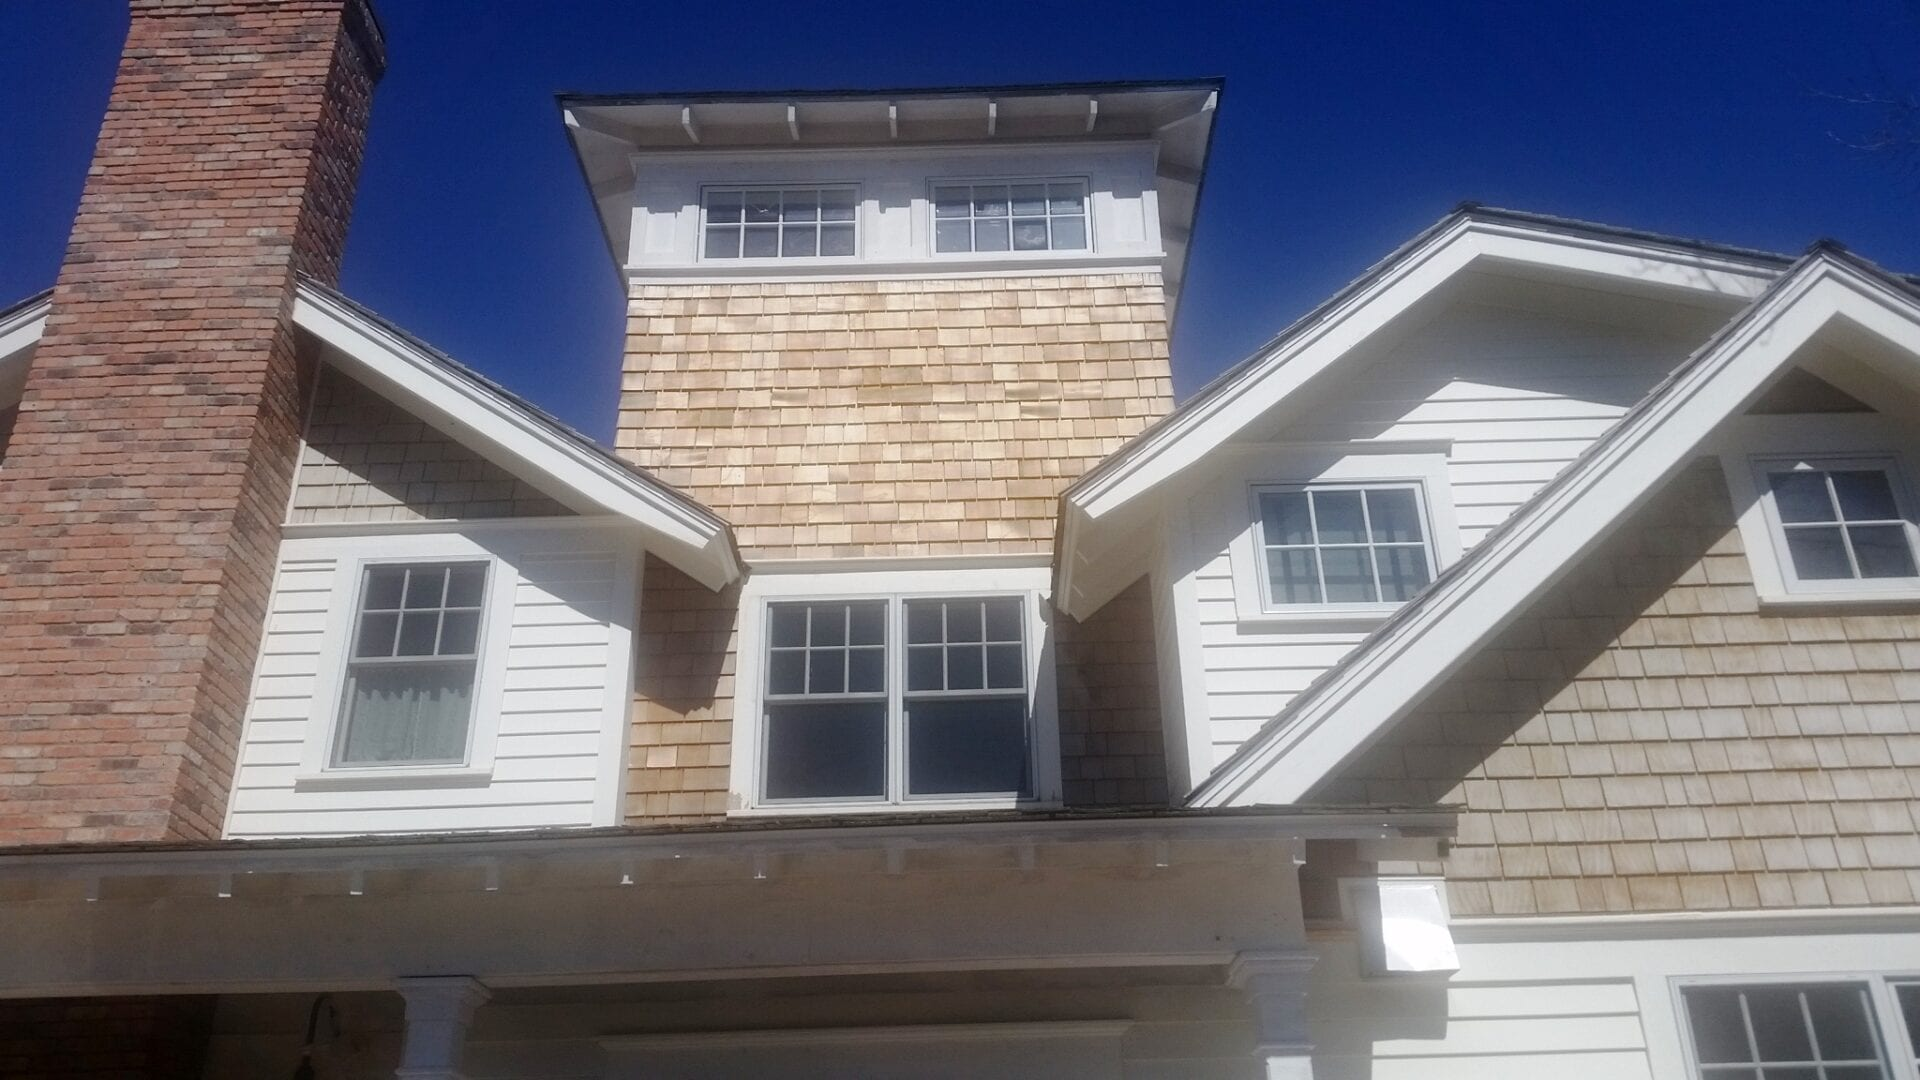 Residential exterior painting in Minnetonka, MN